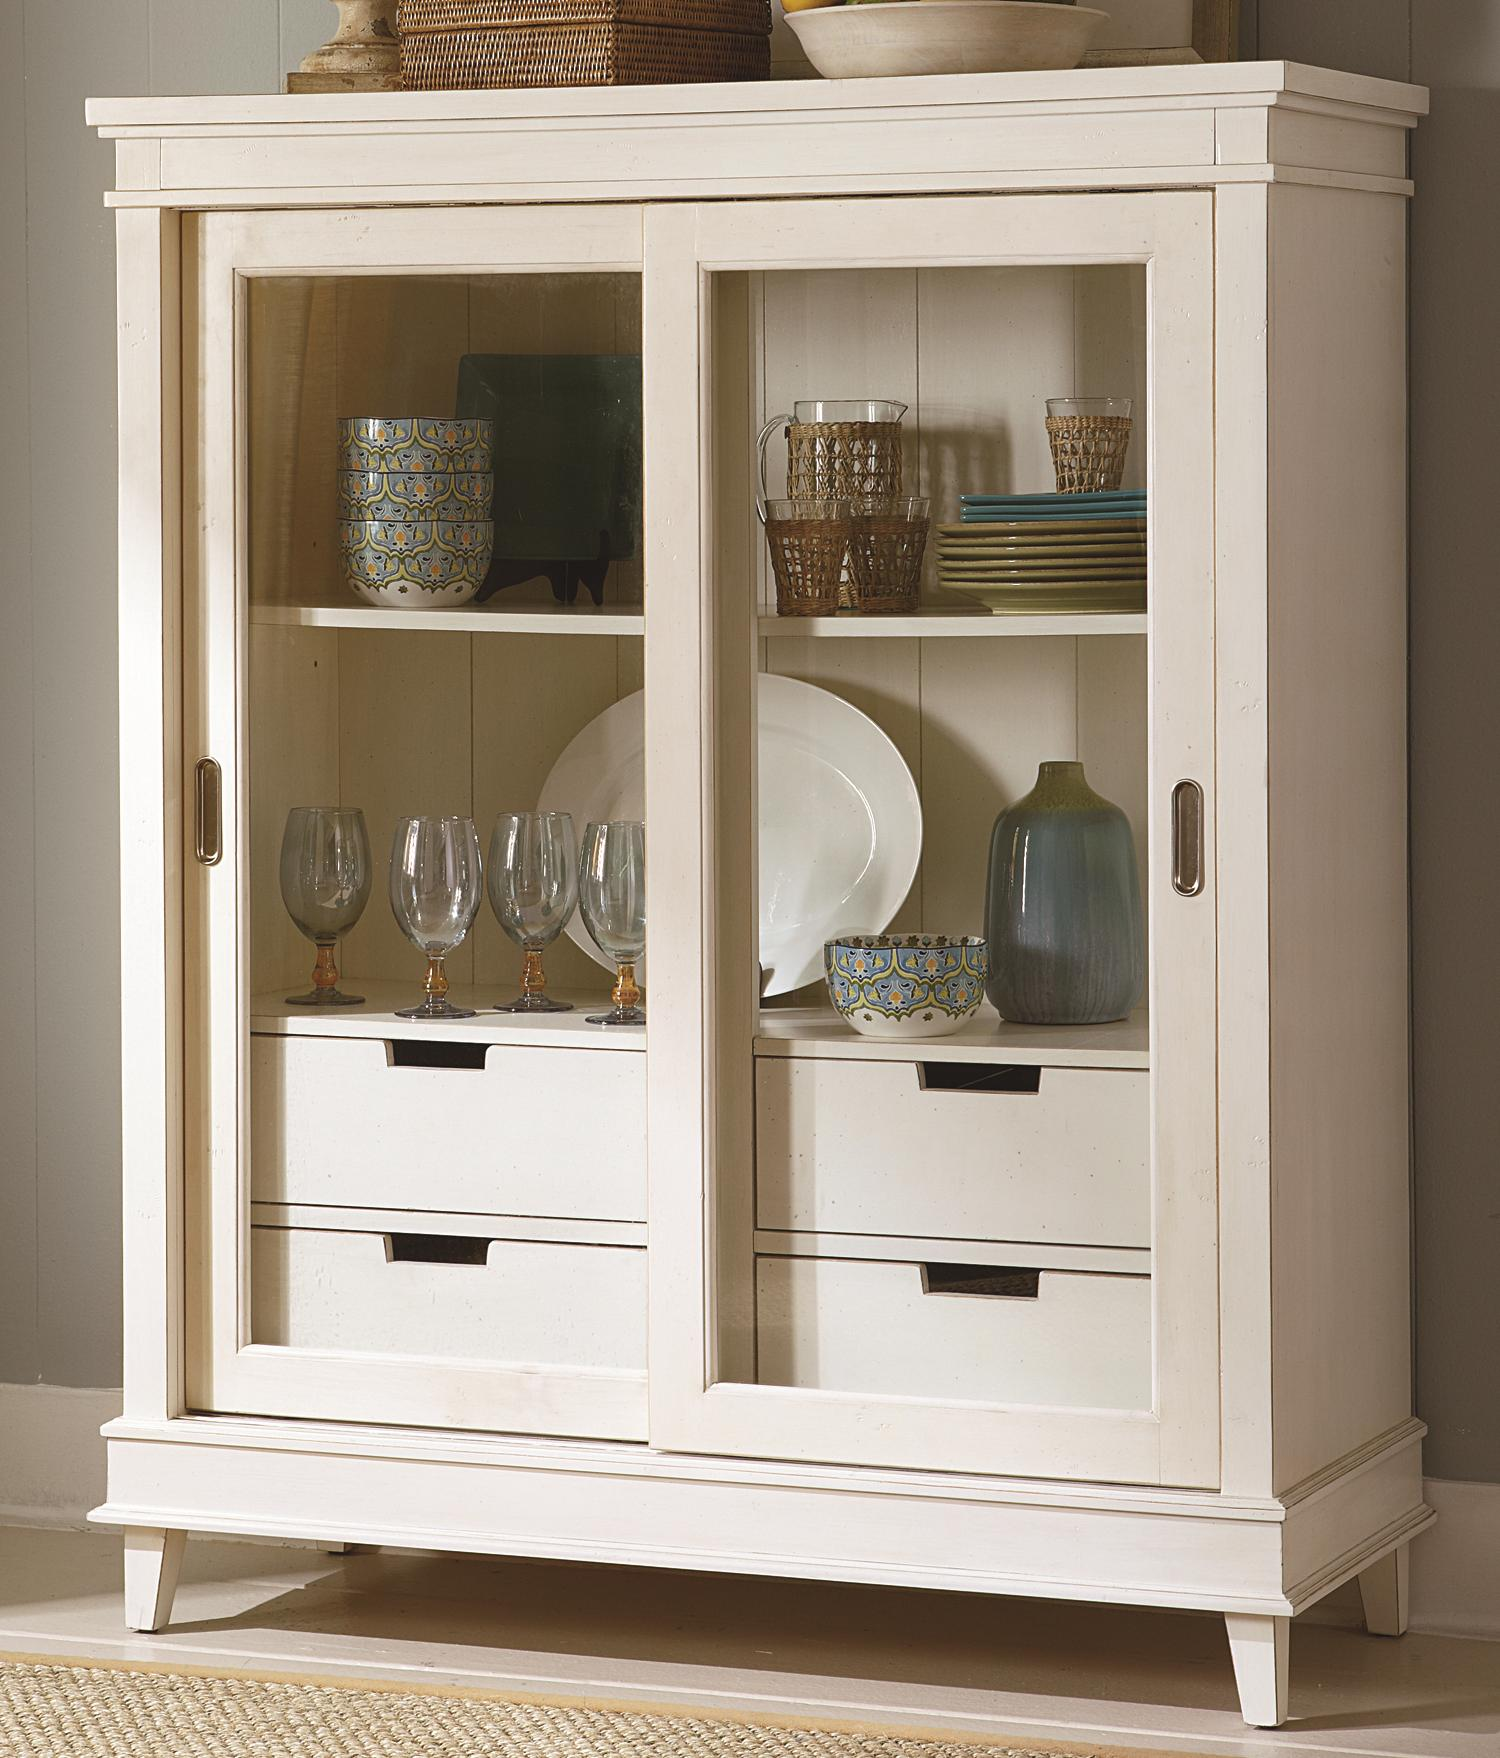 Summerhill Display Cabinet by Liberty Furniture at Lapeer Furniture & Mattress Center